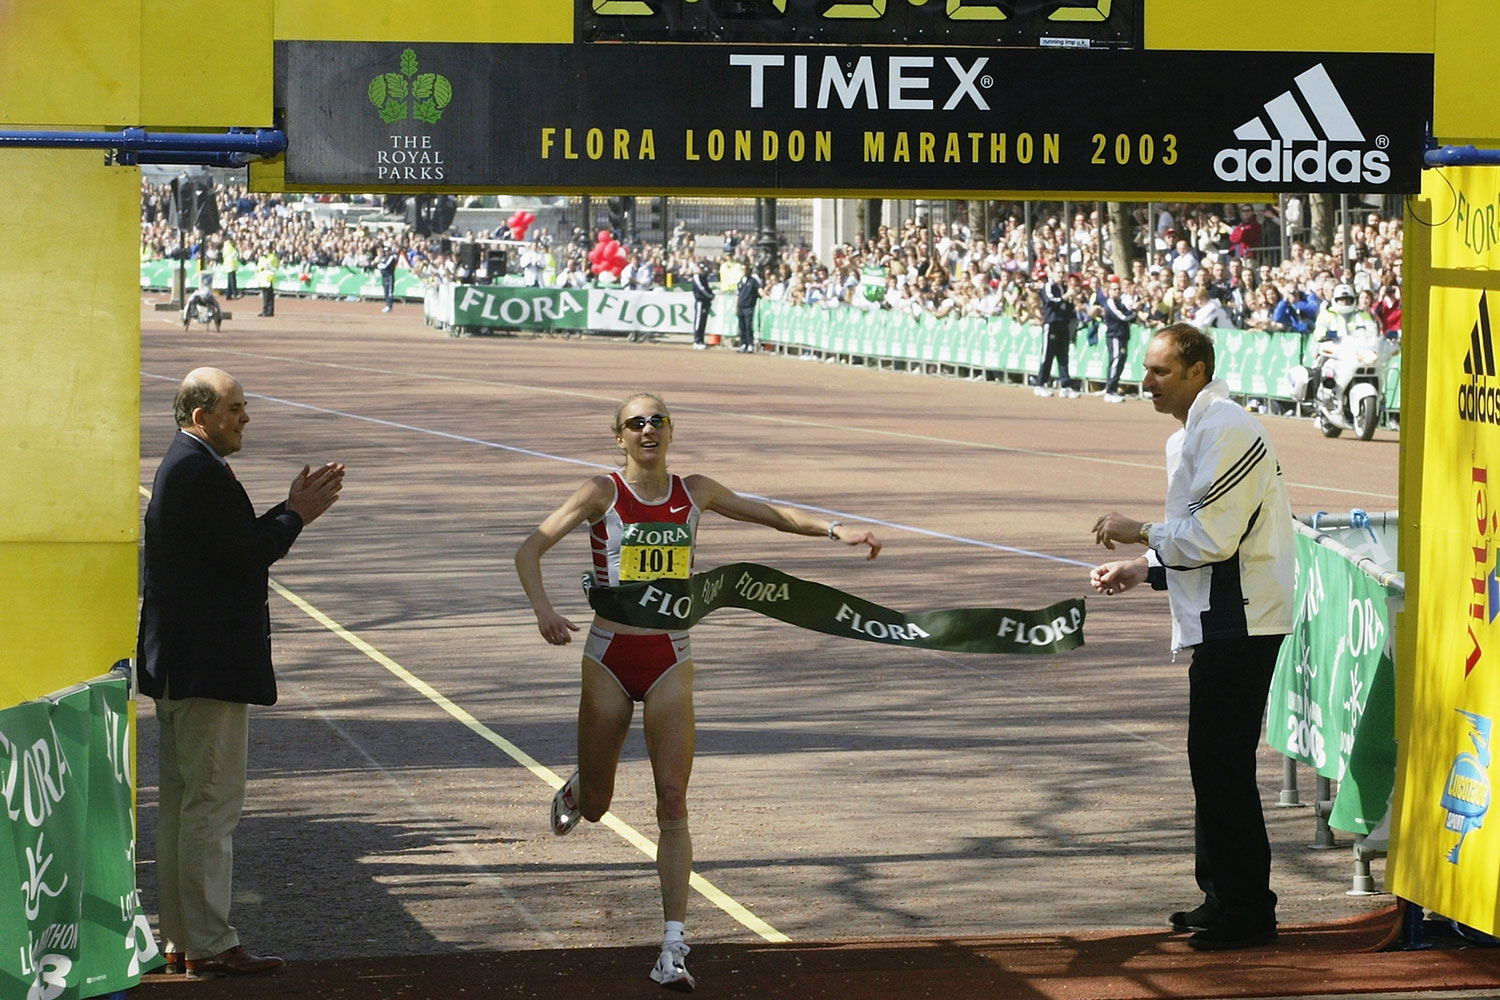 Paula Radcliffe crosses the finish line to win the 2003 Flora London Marathon at the Mall in London, England.